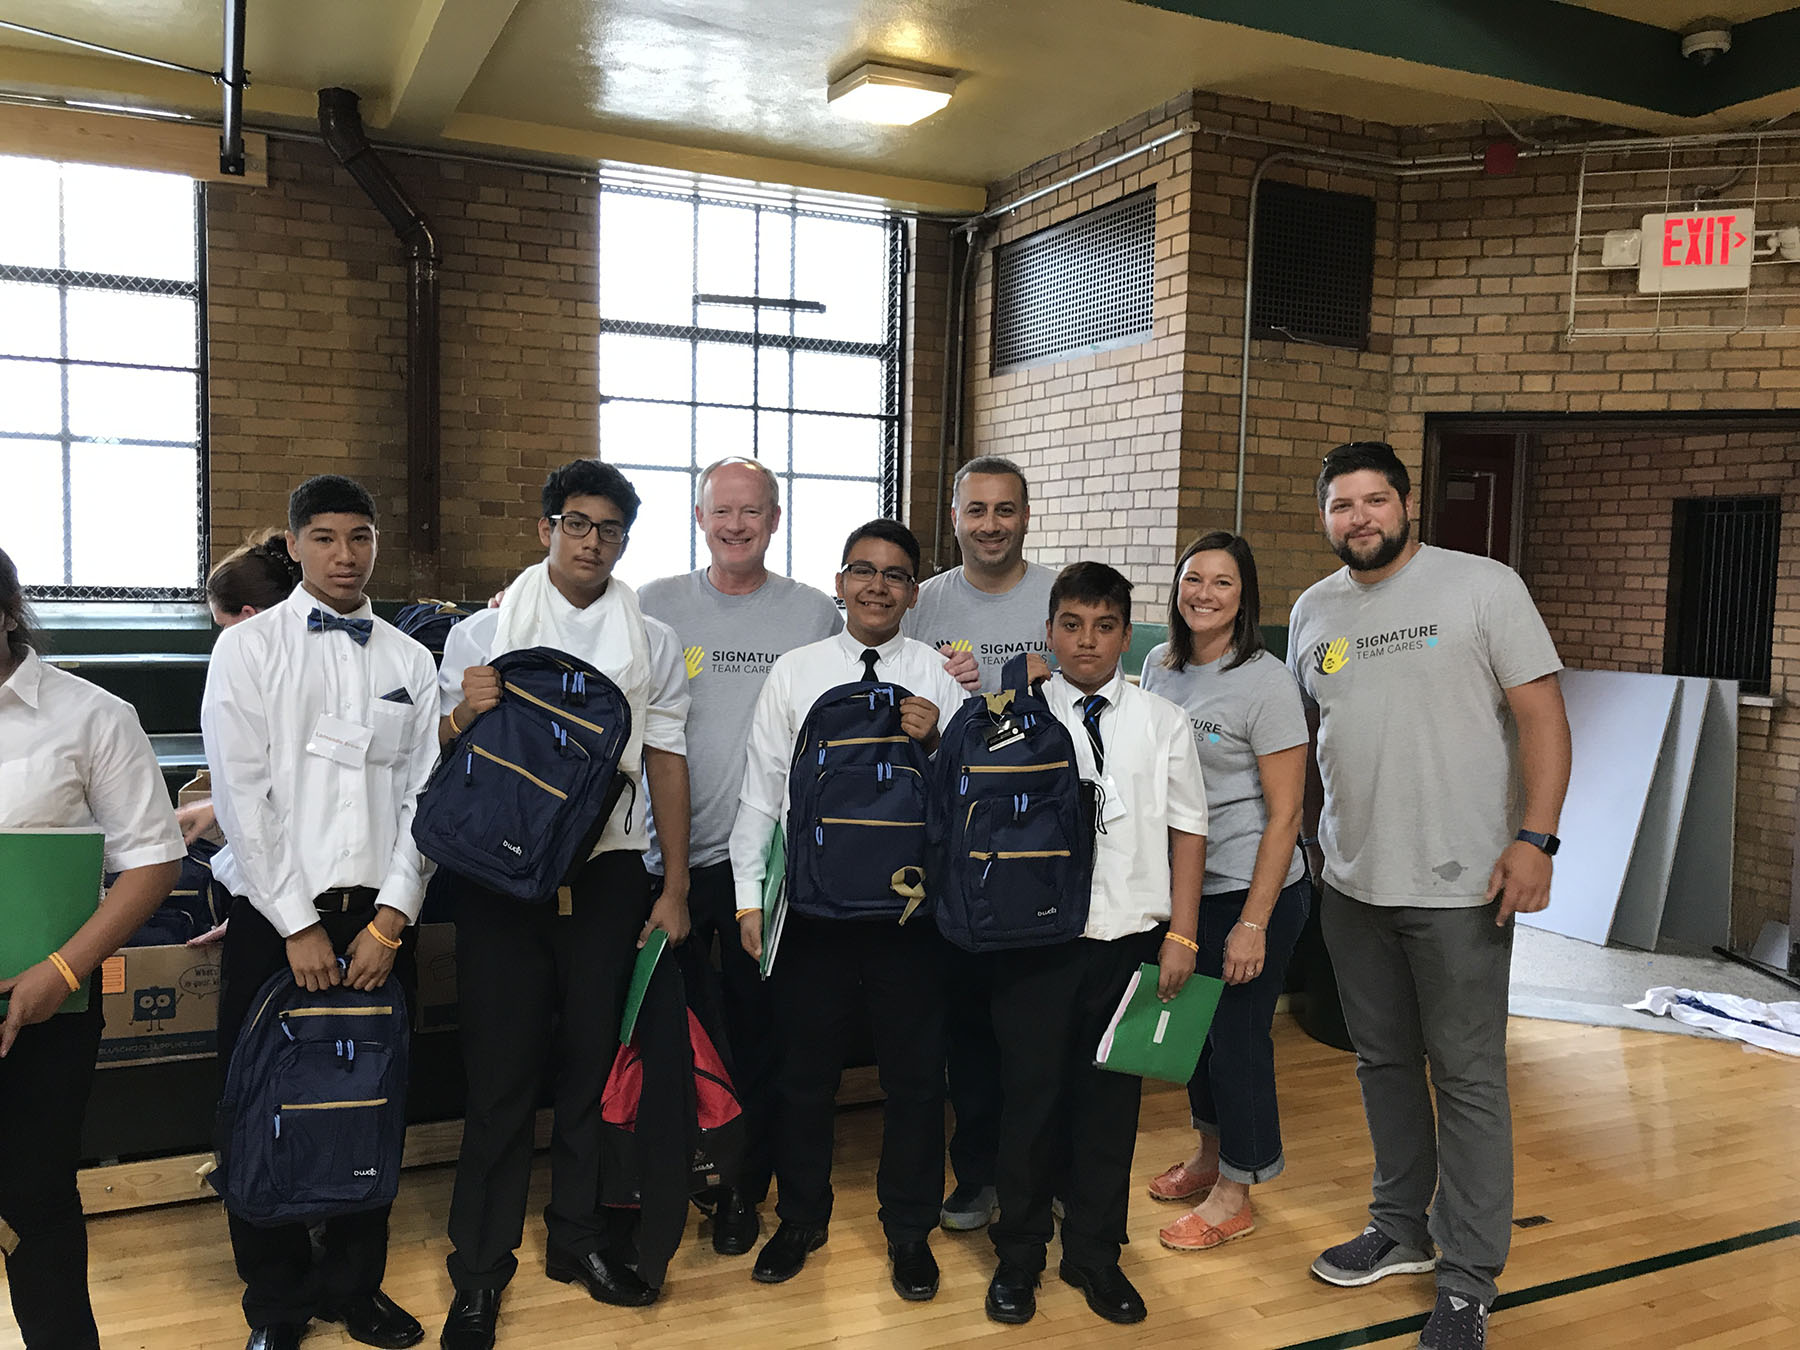 Detroit Cristo Rey group with their backpacks